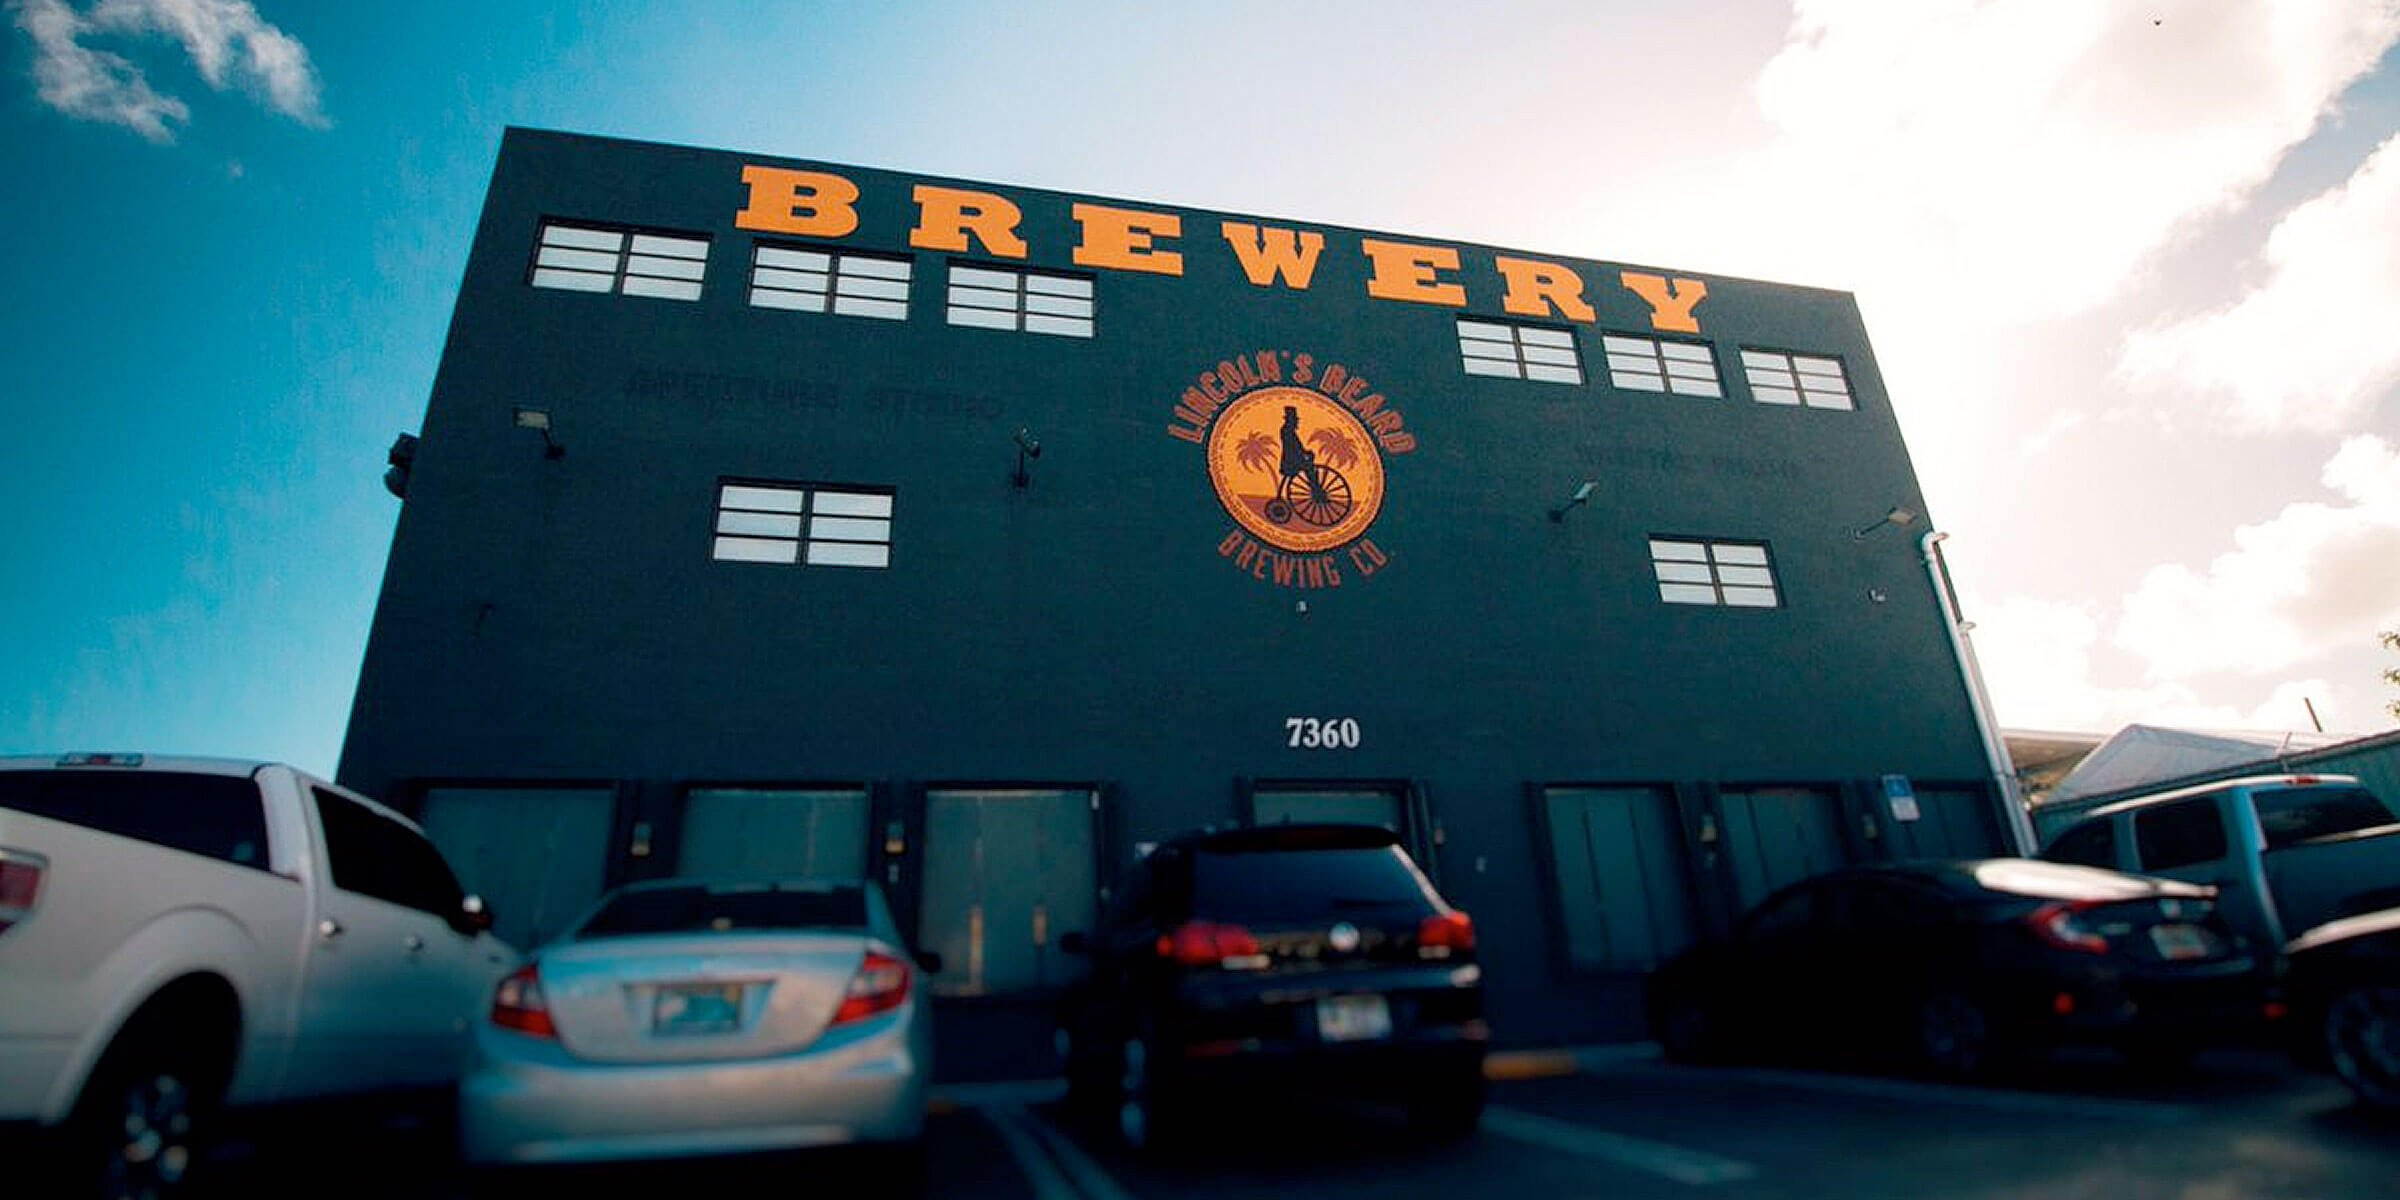 Outside the Lincoln's Beard Brewing Co. brewery in Miami, Florida